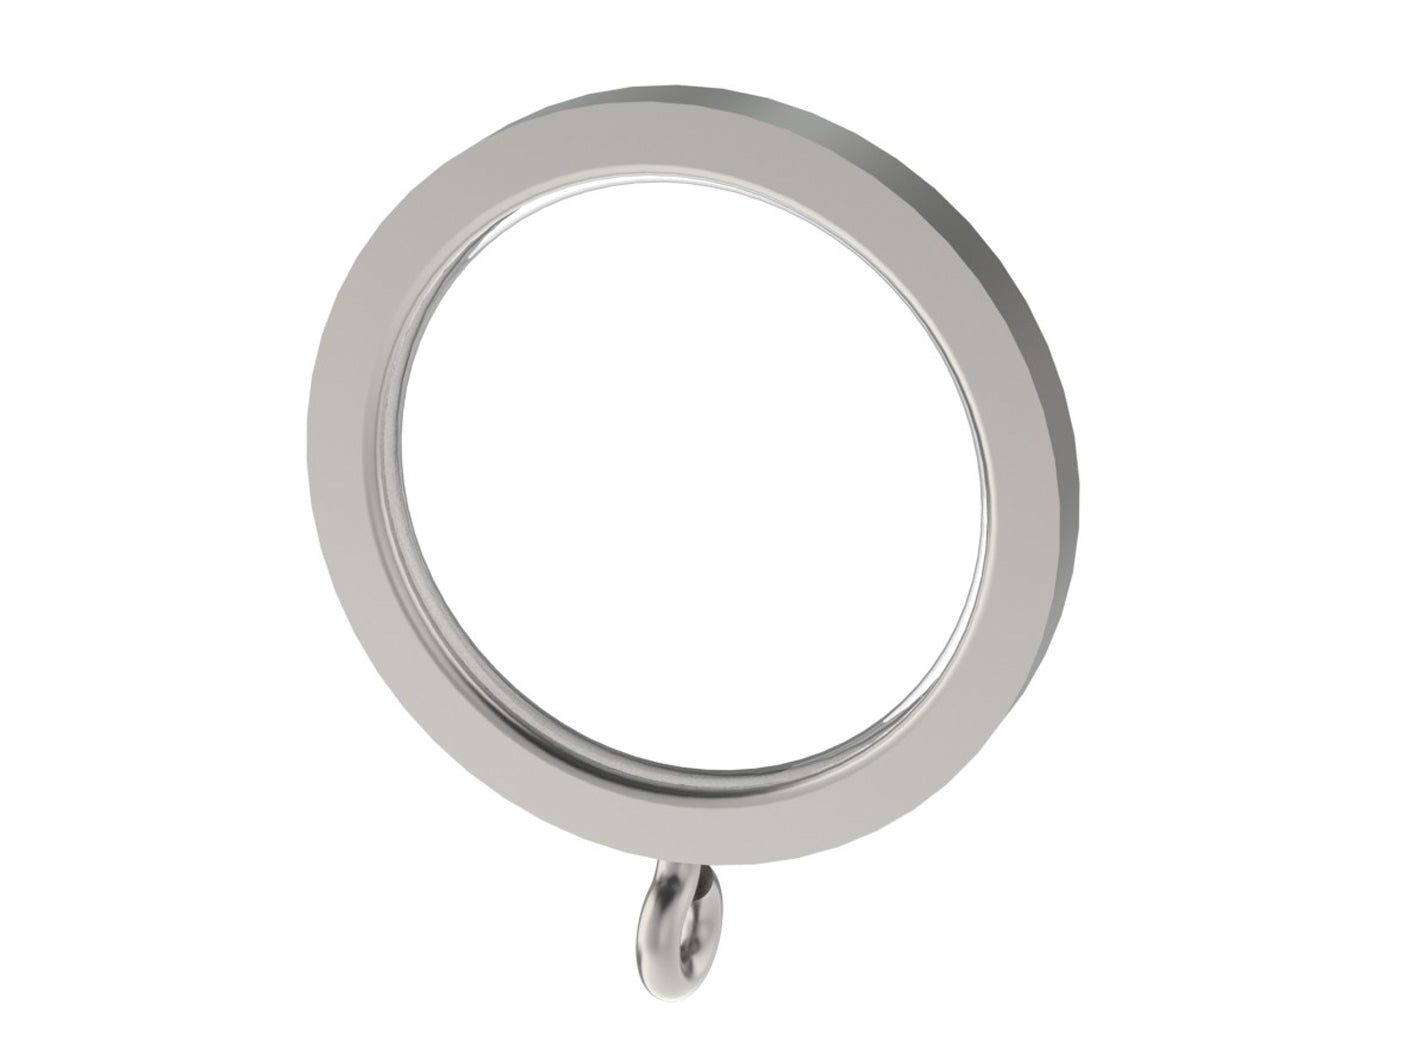 stainless steel curtain rings for 30mm curtain pole by Walcot House